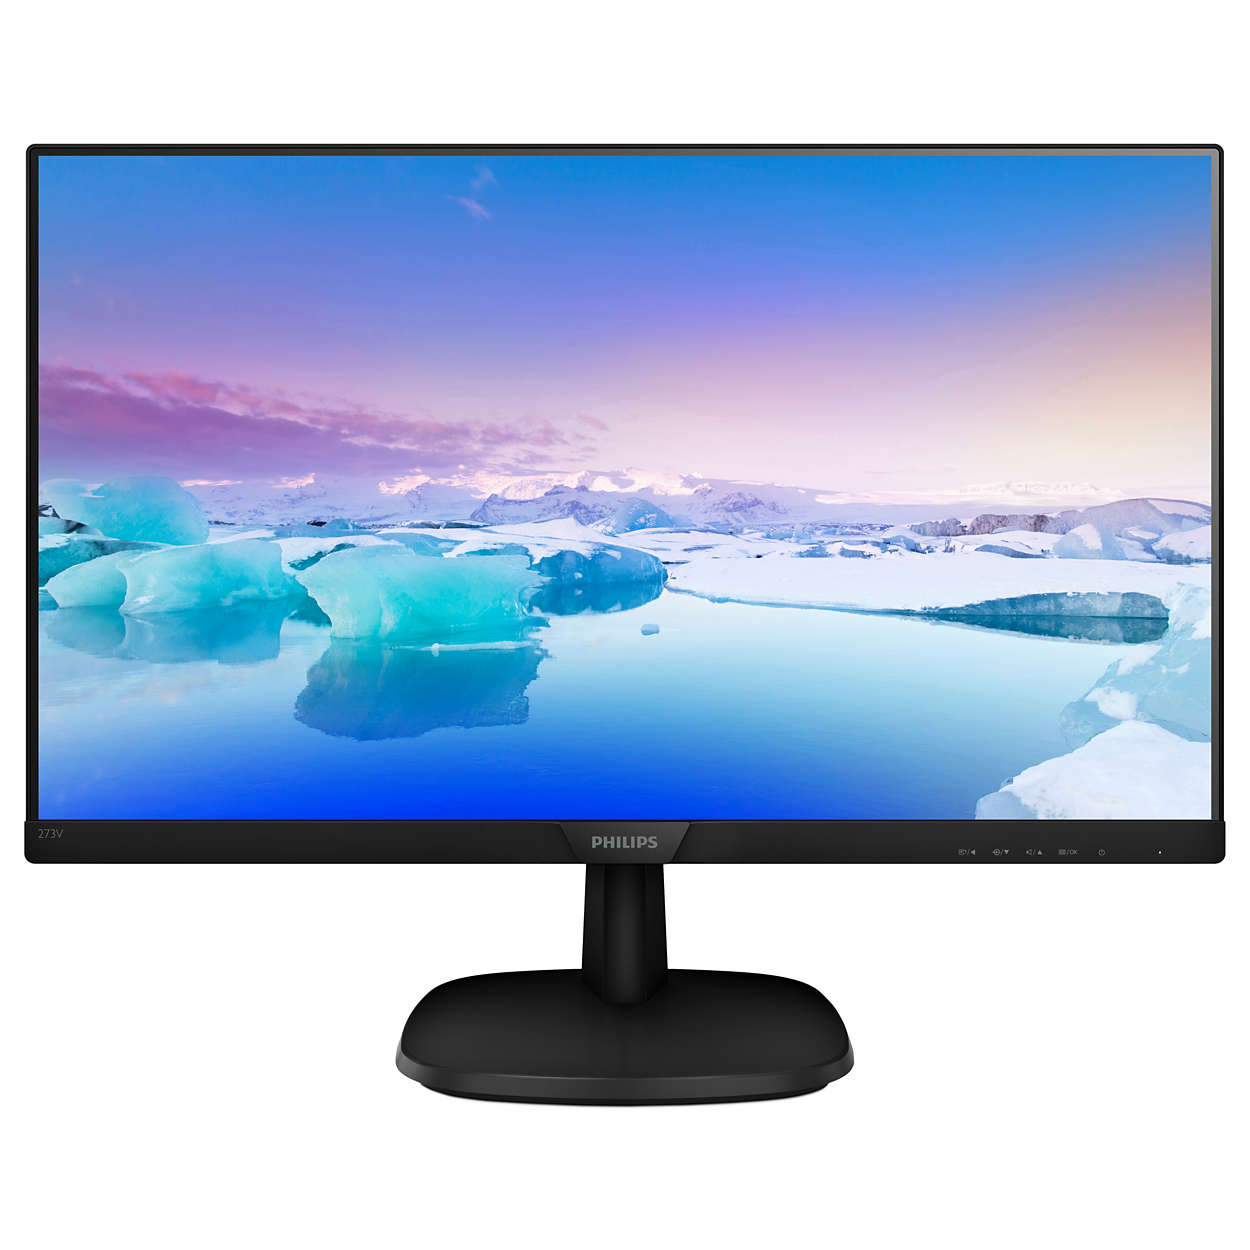 Monitor LED Philips 273V7QJAB/00 27 5ms Full HD Negru